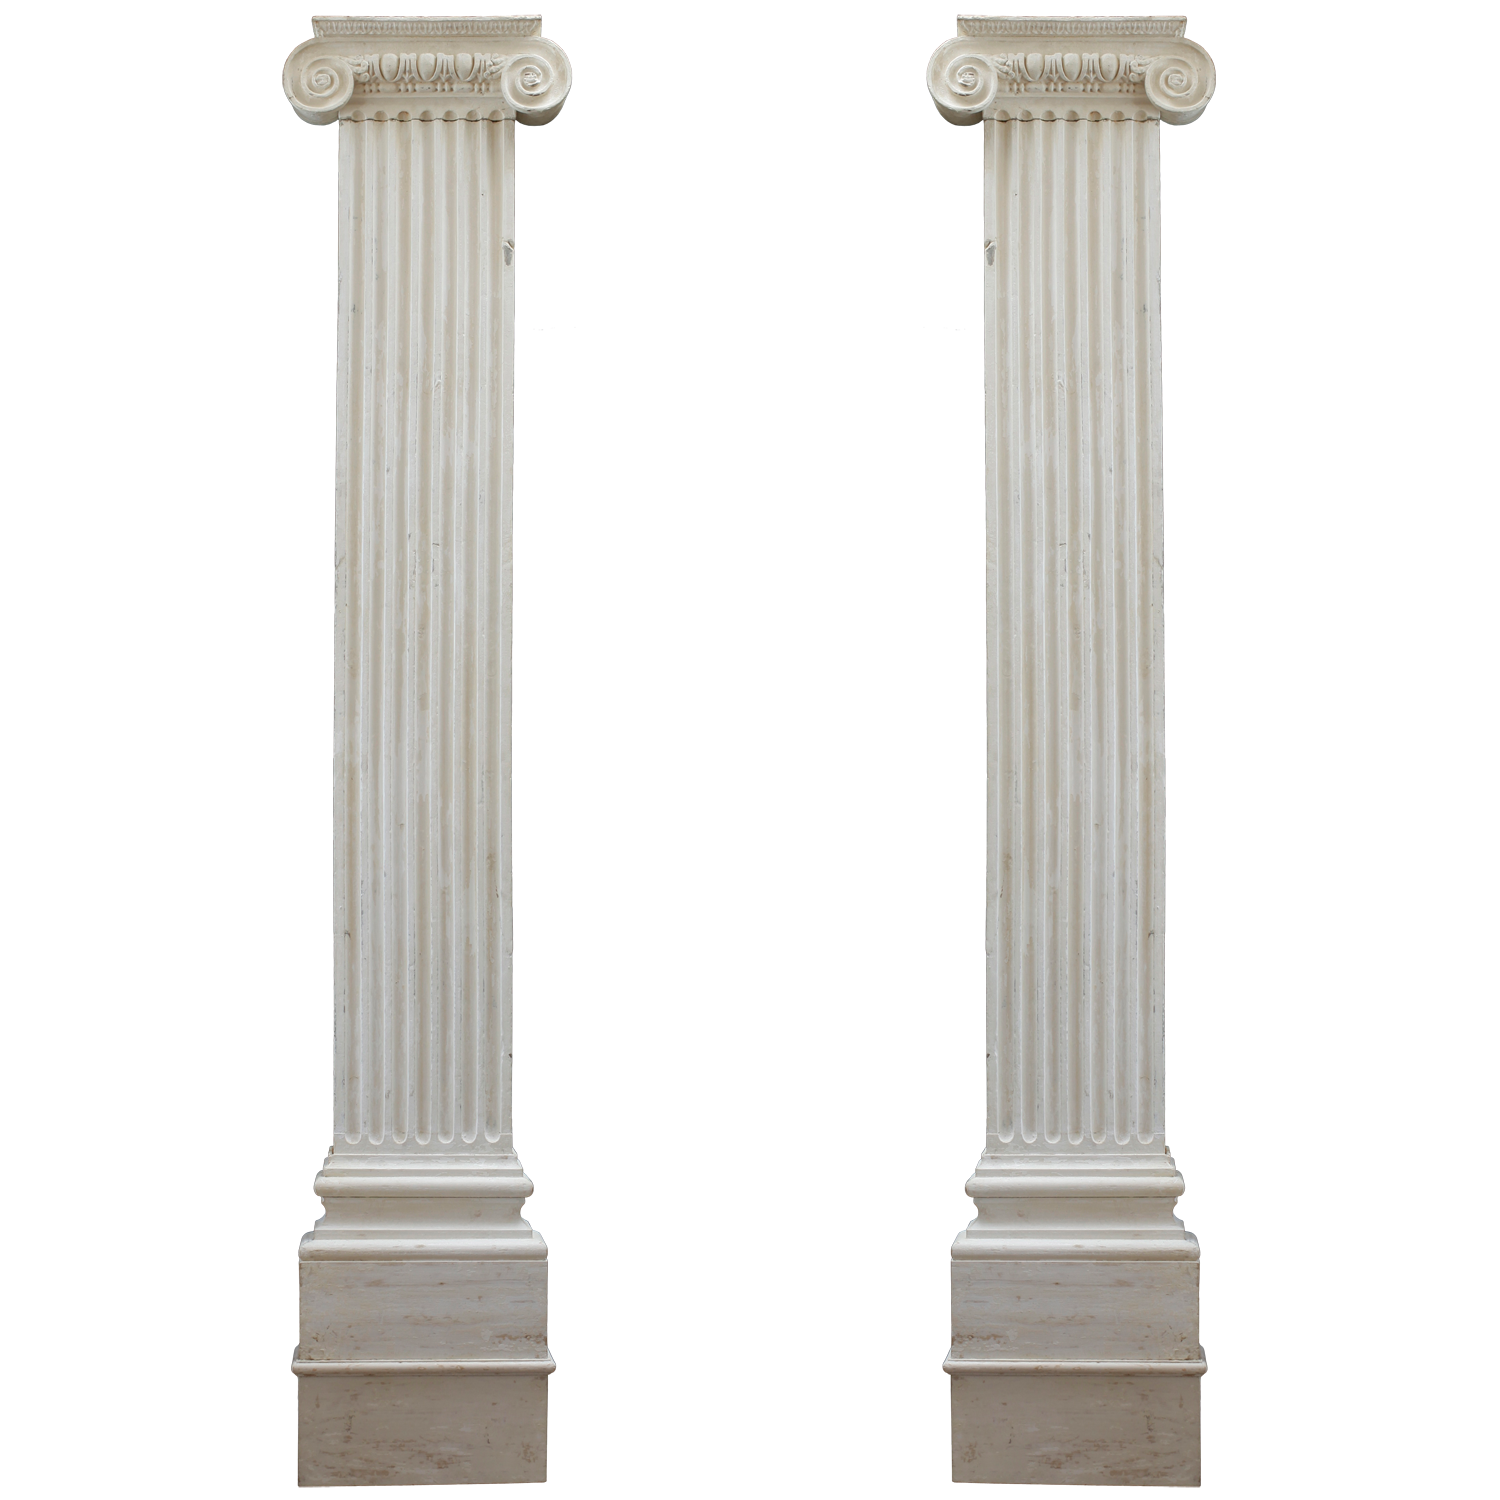 Pillar transparent ionic. Column png images free